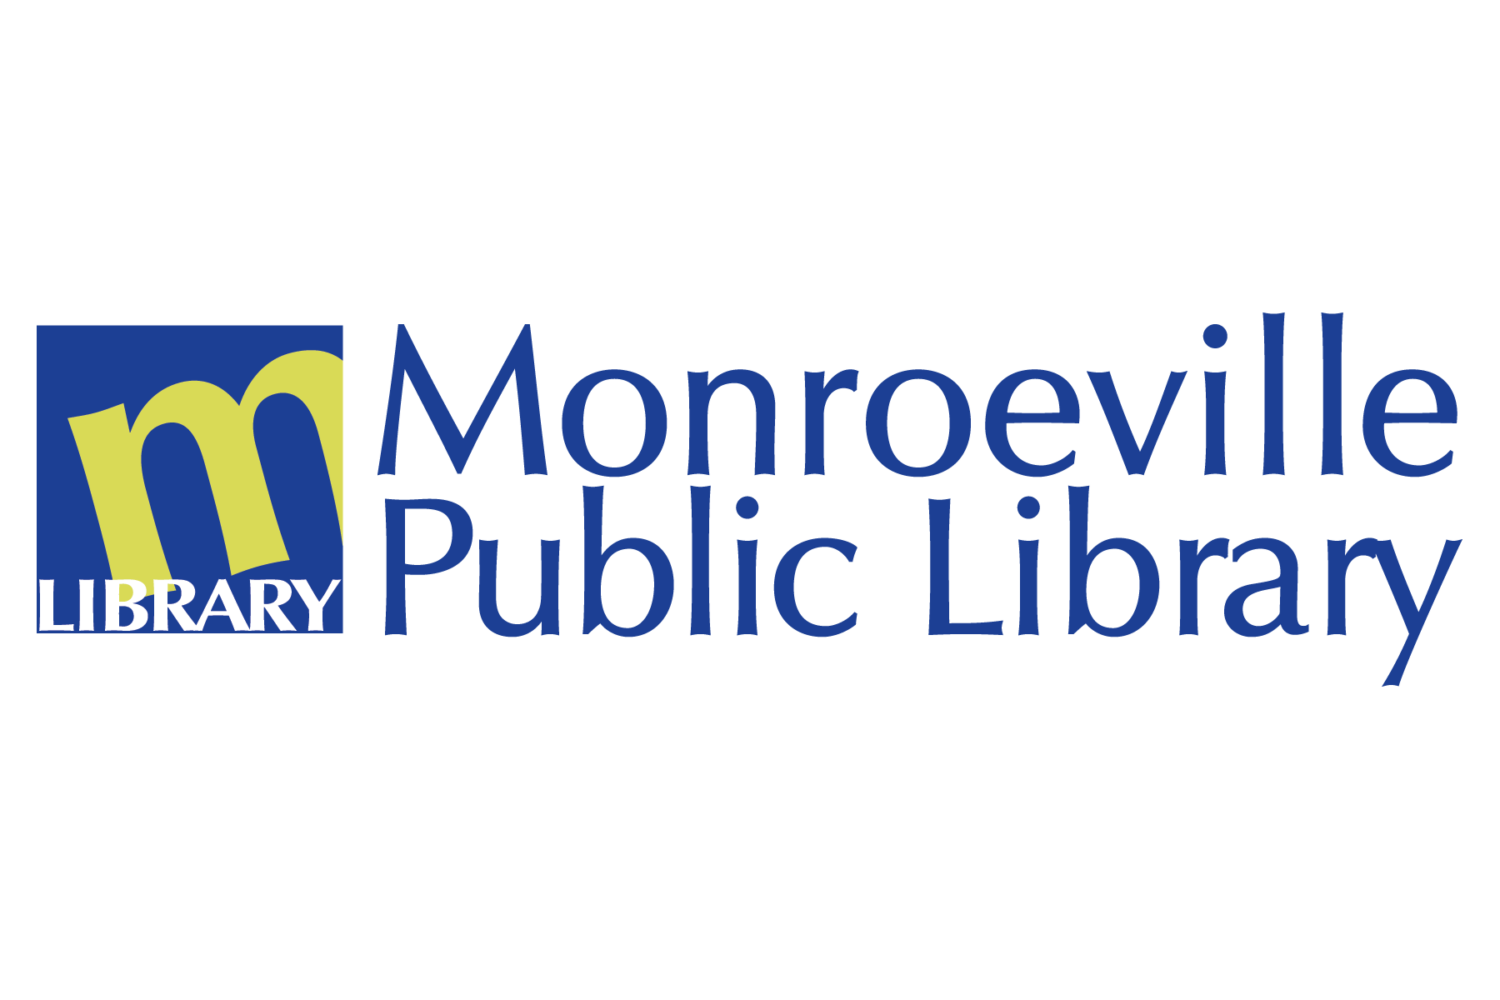 monroeville-library-1500x1000.png